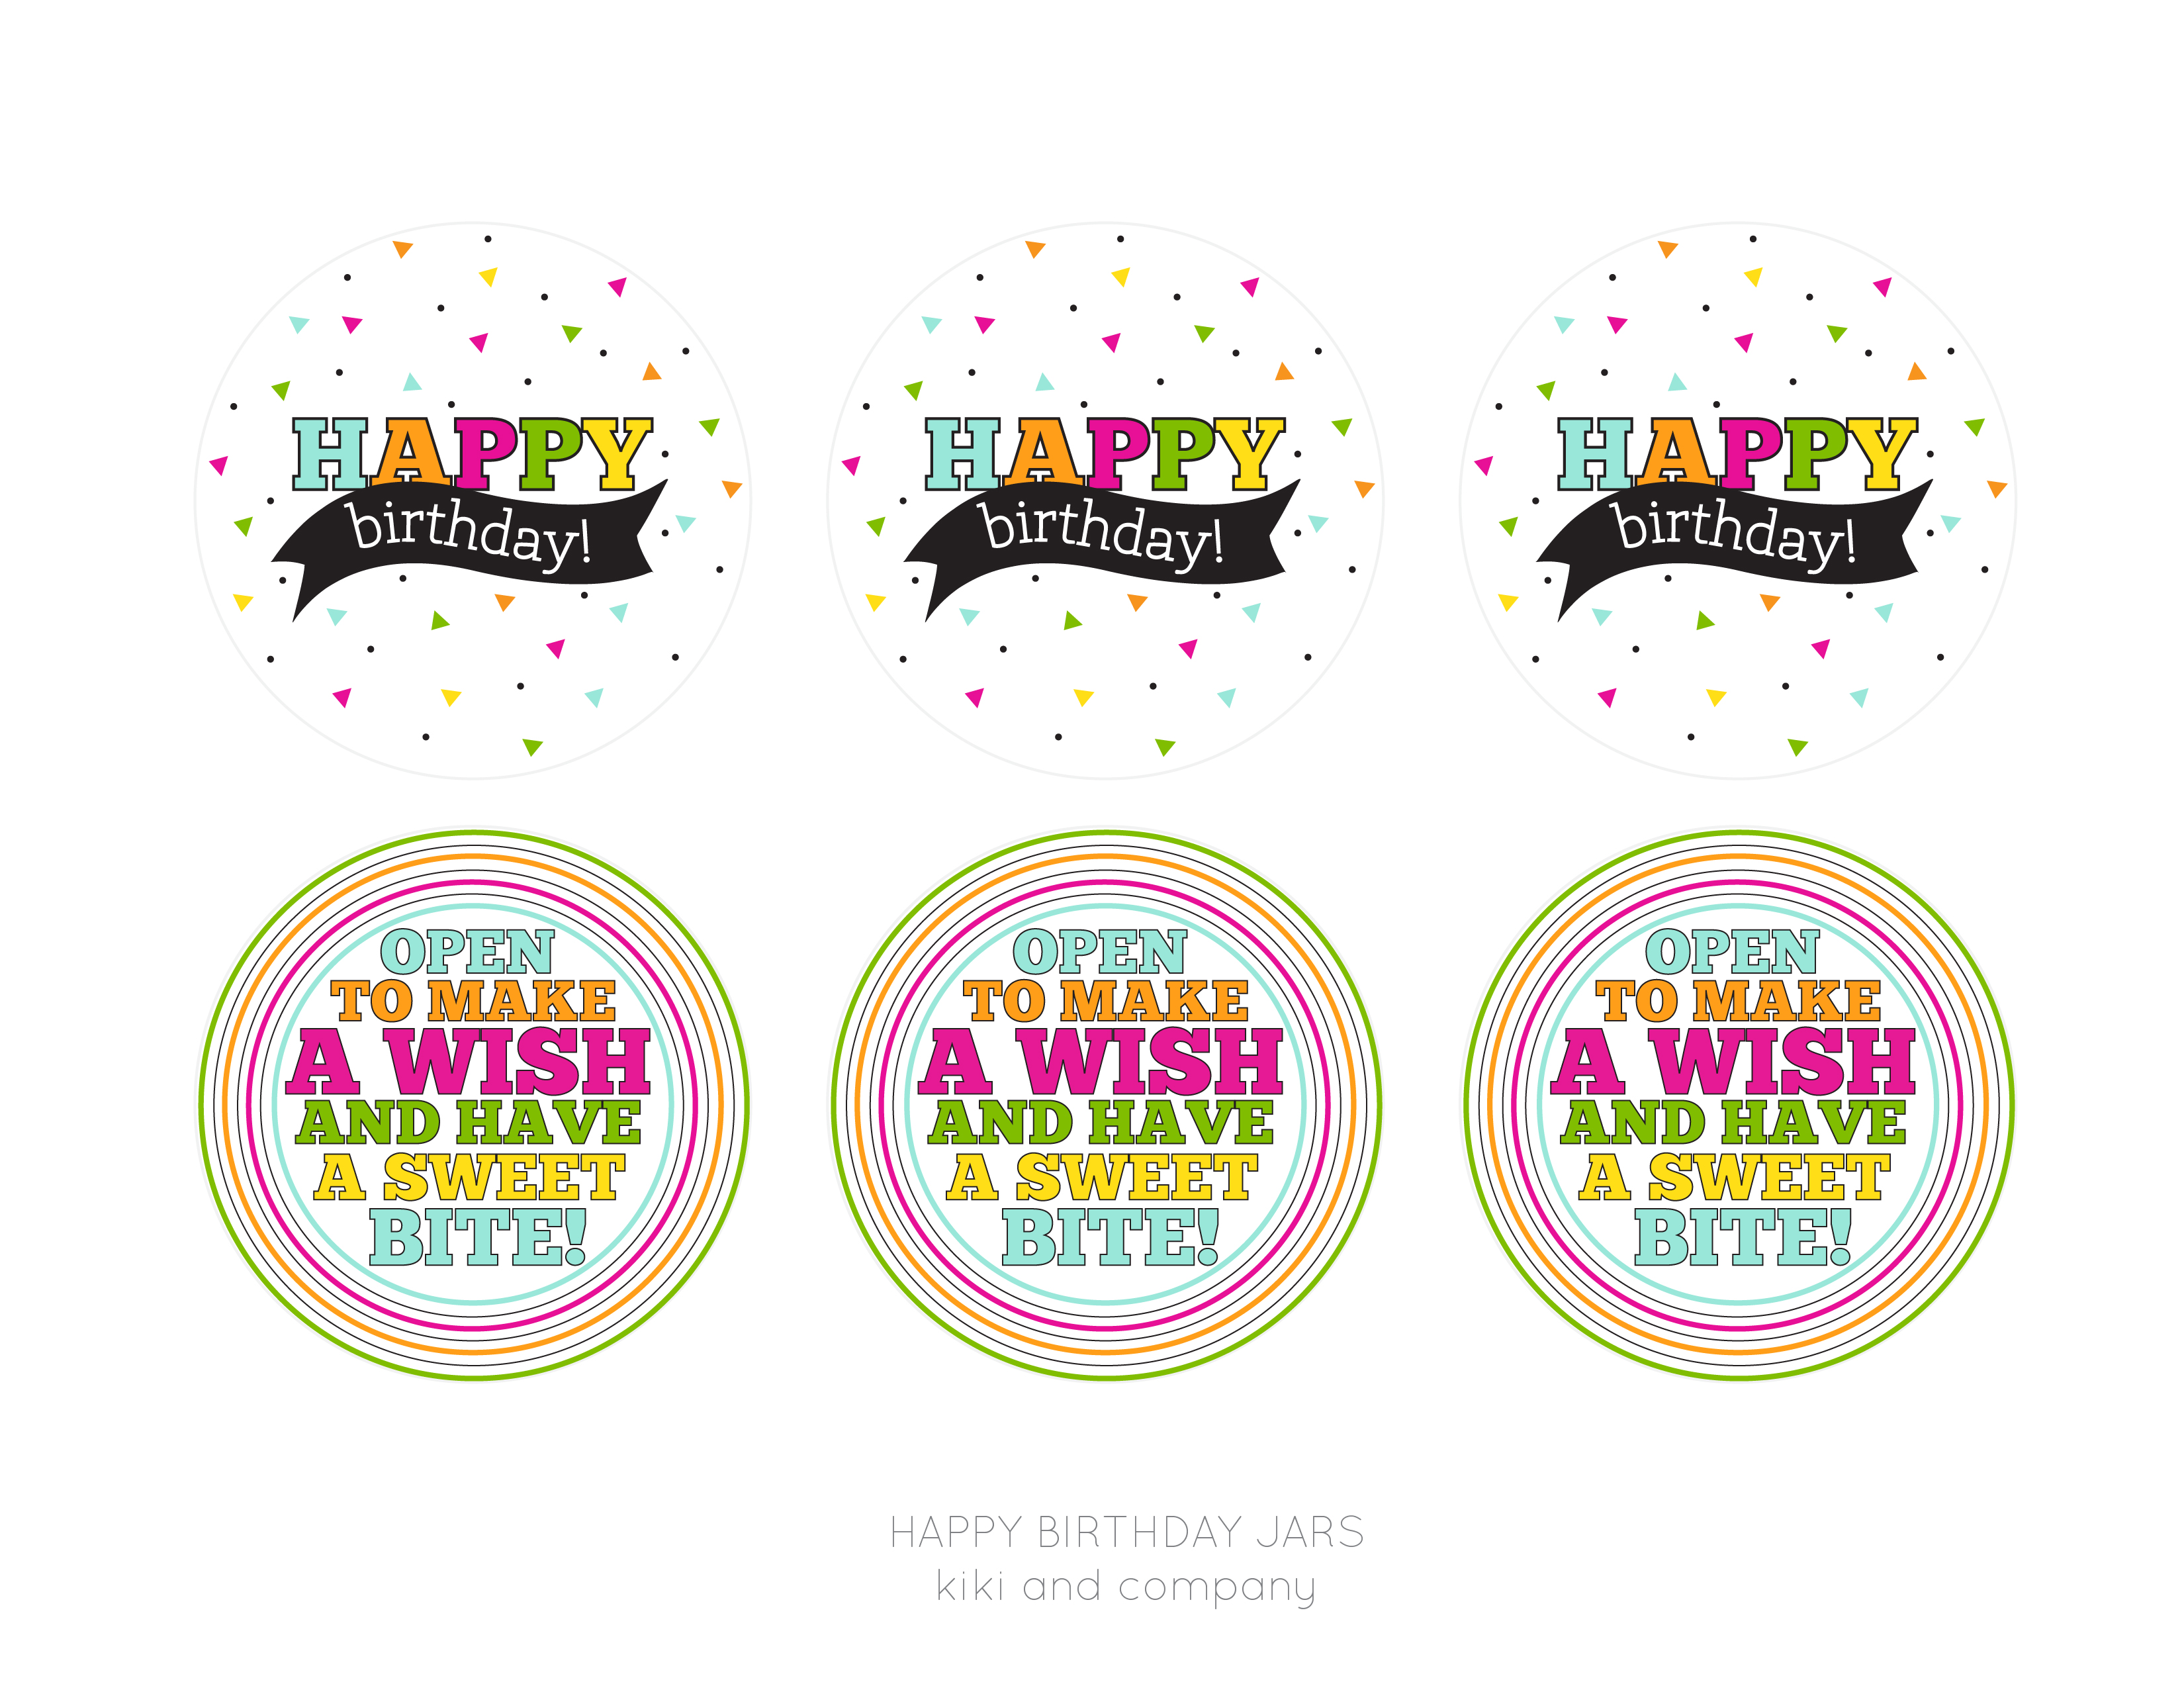 Happy Birthday Jar Free Printable